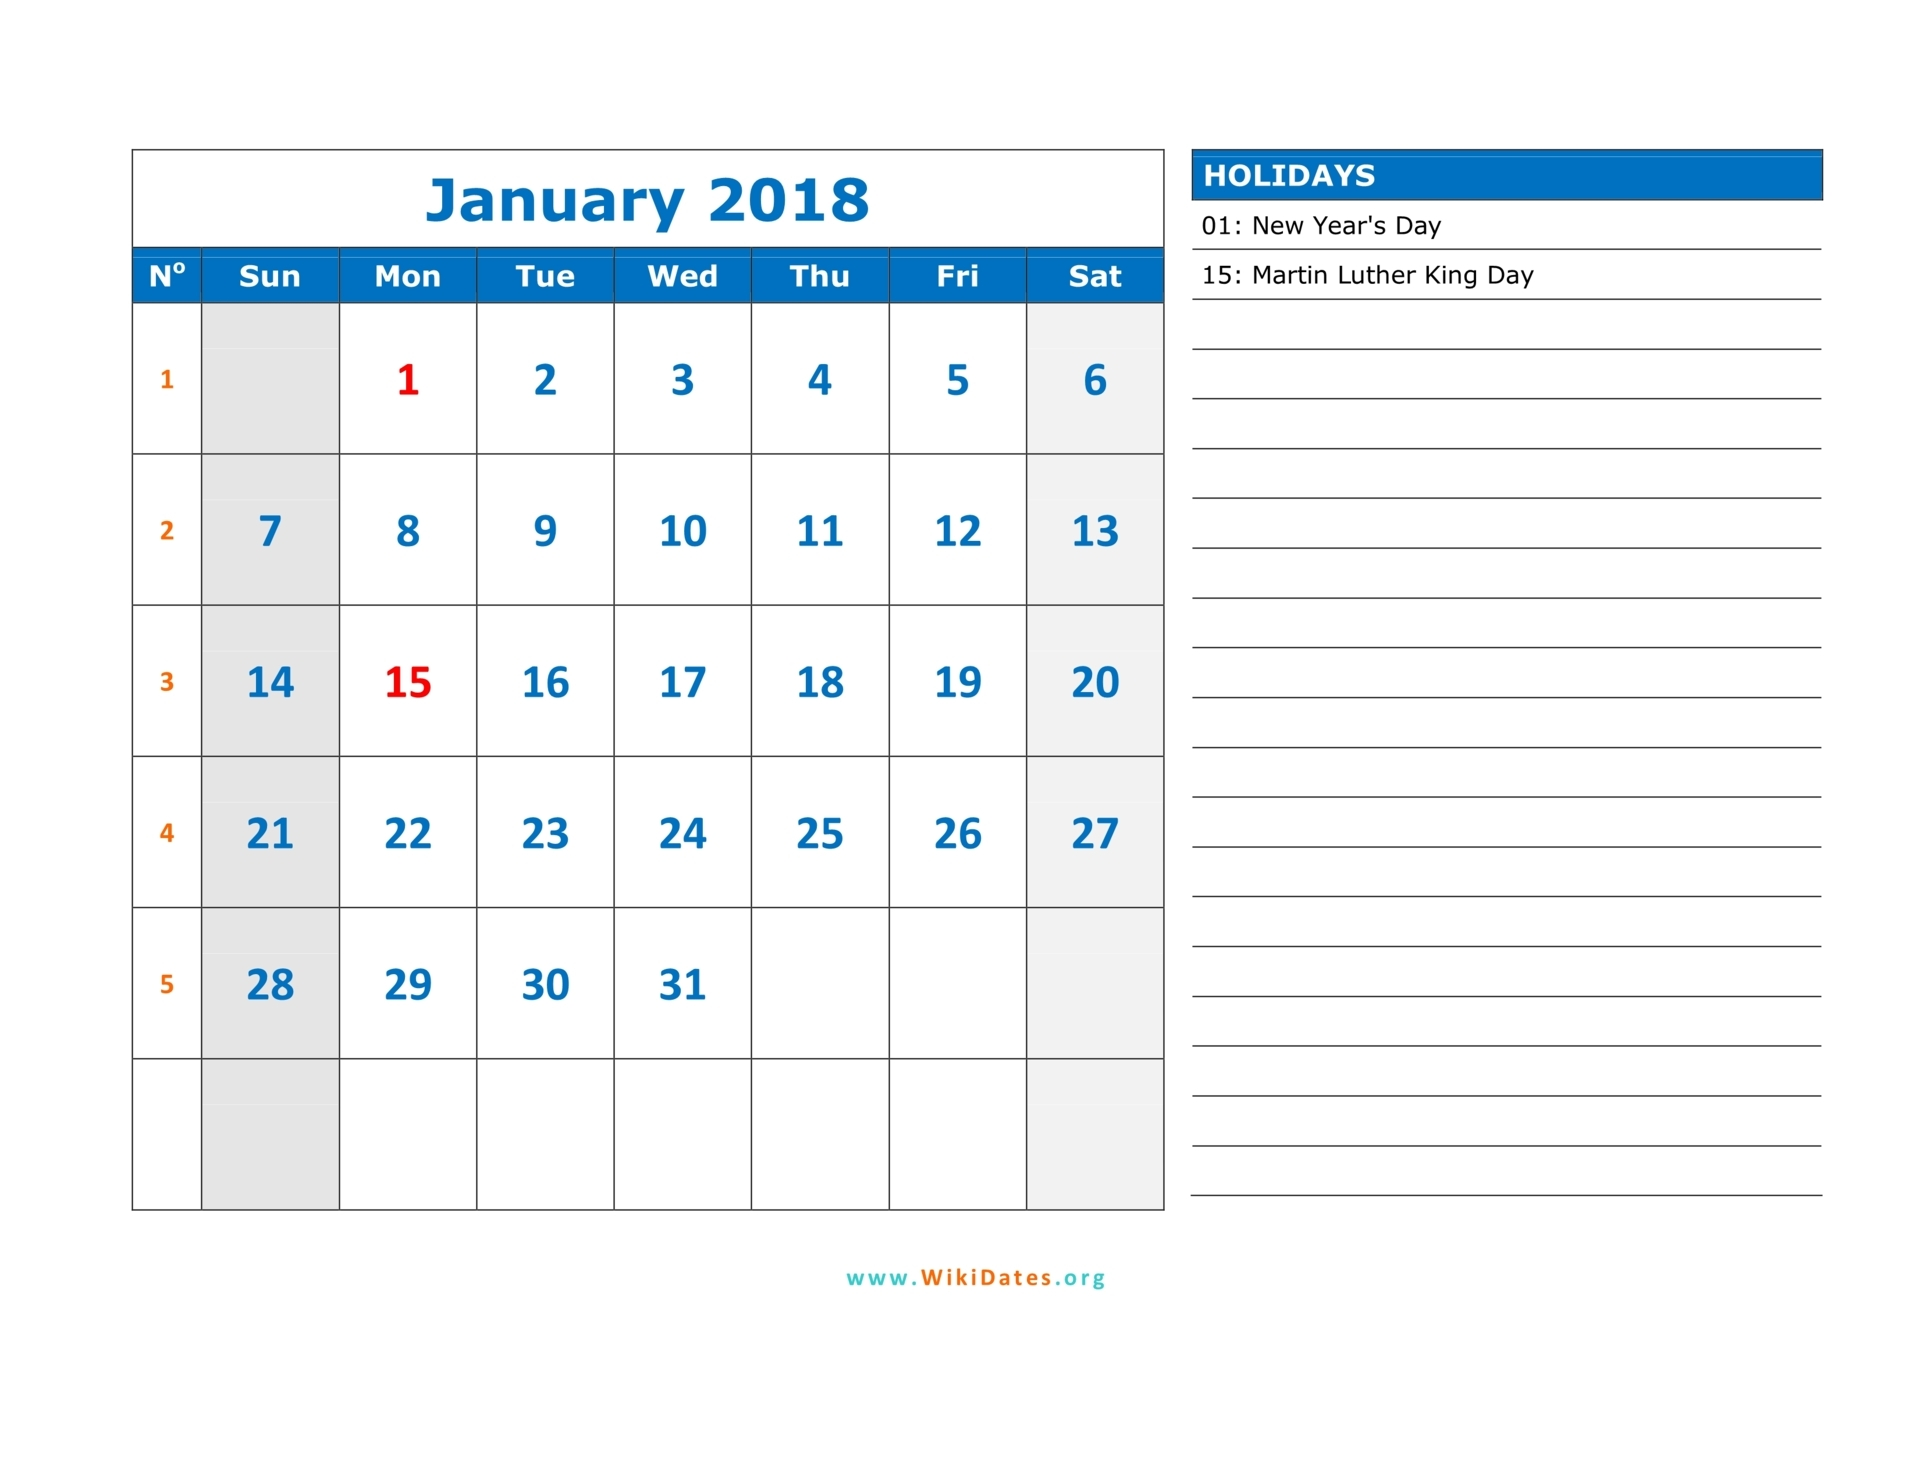 January 2018 Calendar | WikiDates.org